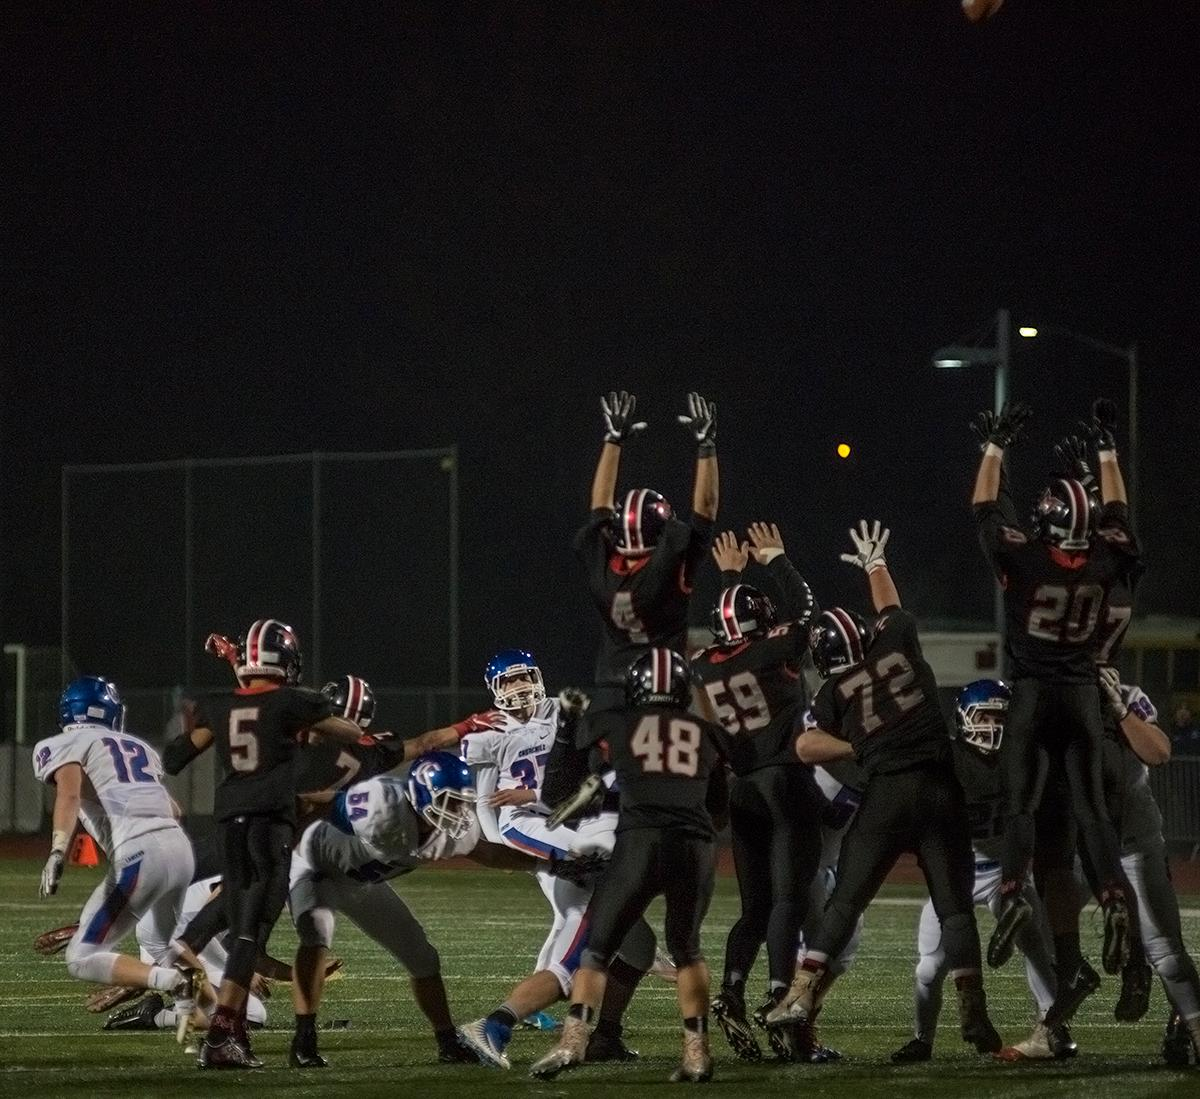 The Mountain View Cougars defense leaps to block a field goal attempt by the Churchill Lancers. The Churchill Lancers defeated the Mountain View Cougars 35-28 on Saturday night at Liberty High School, securing a spot in the 5A state championship. Photo by Abigail Winn, Oregon News Lab